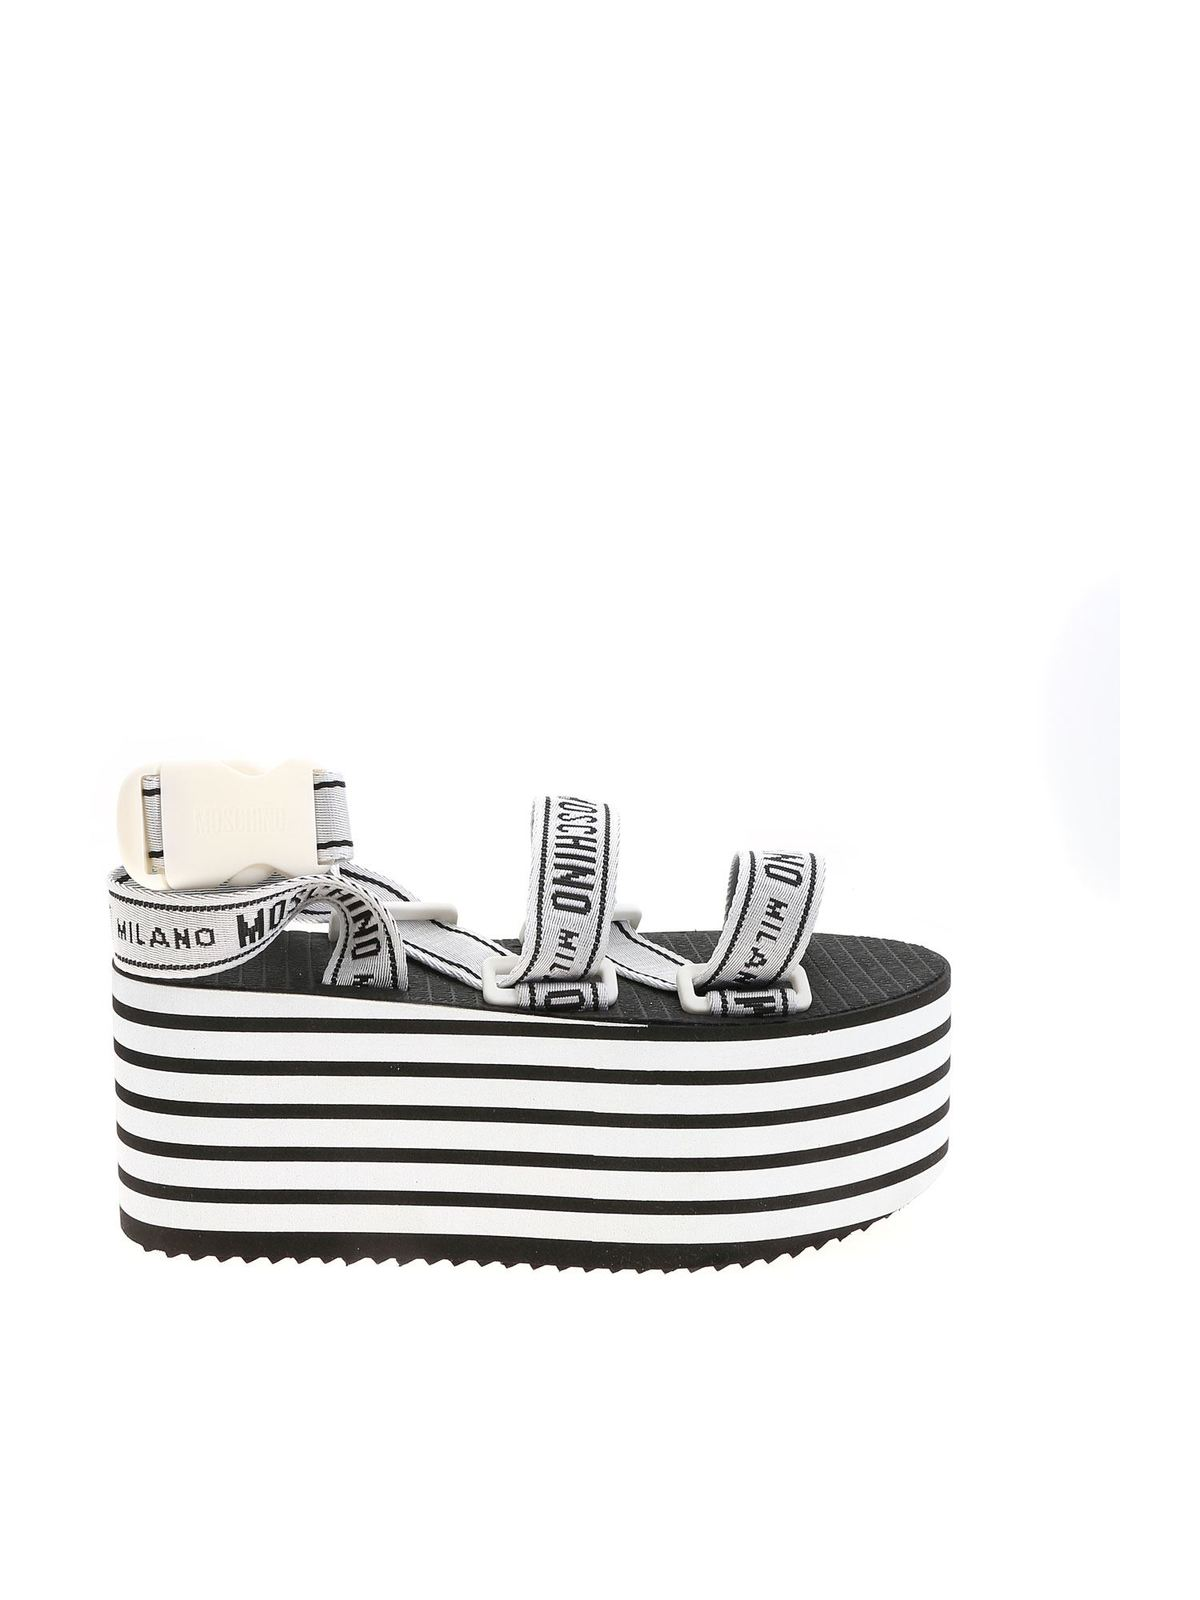 Moschino TAPE LOGO WEDGE SANDALS IN WHITE